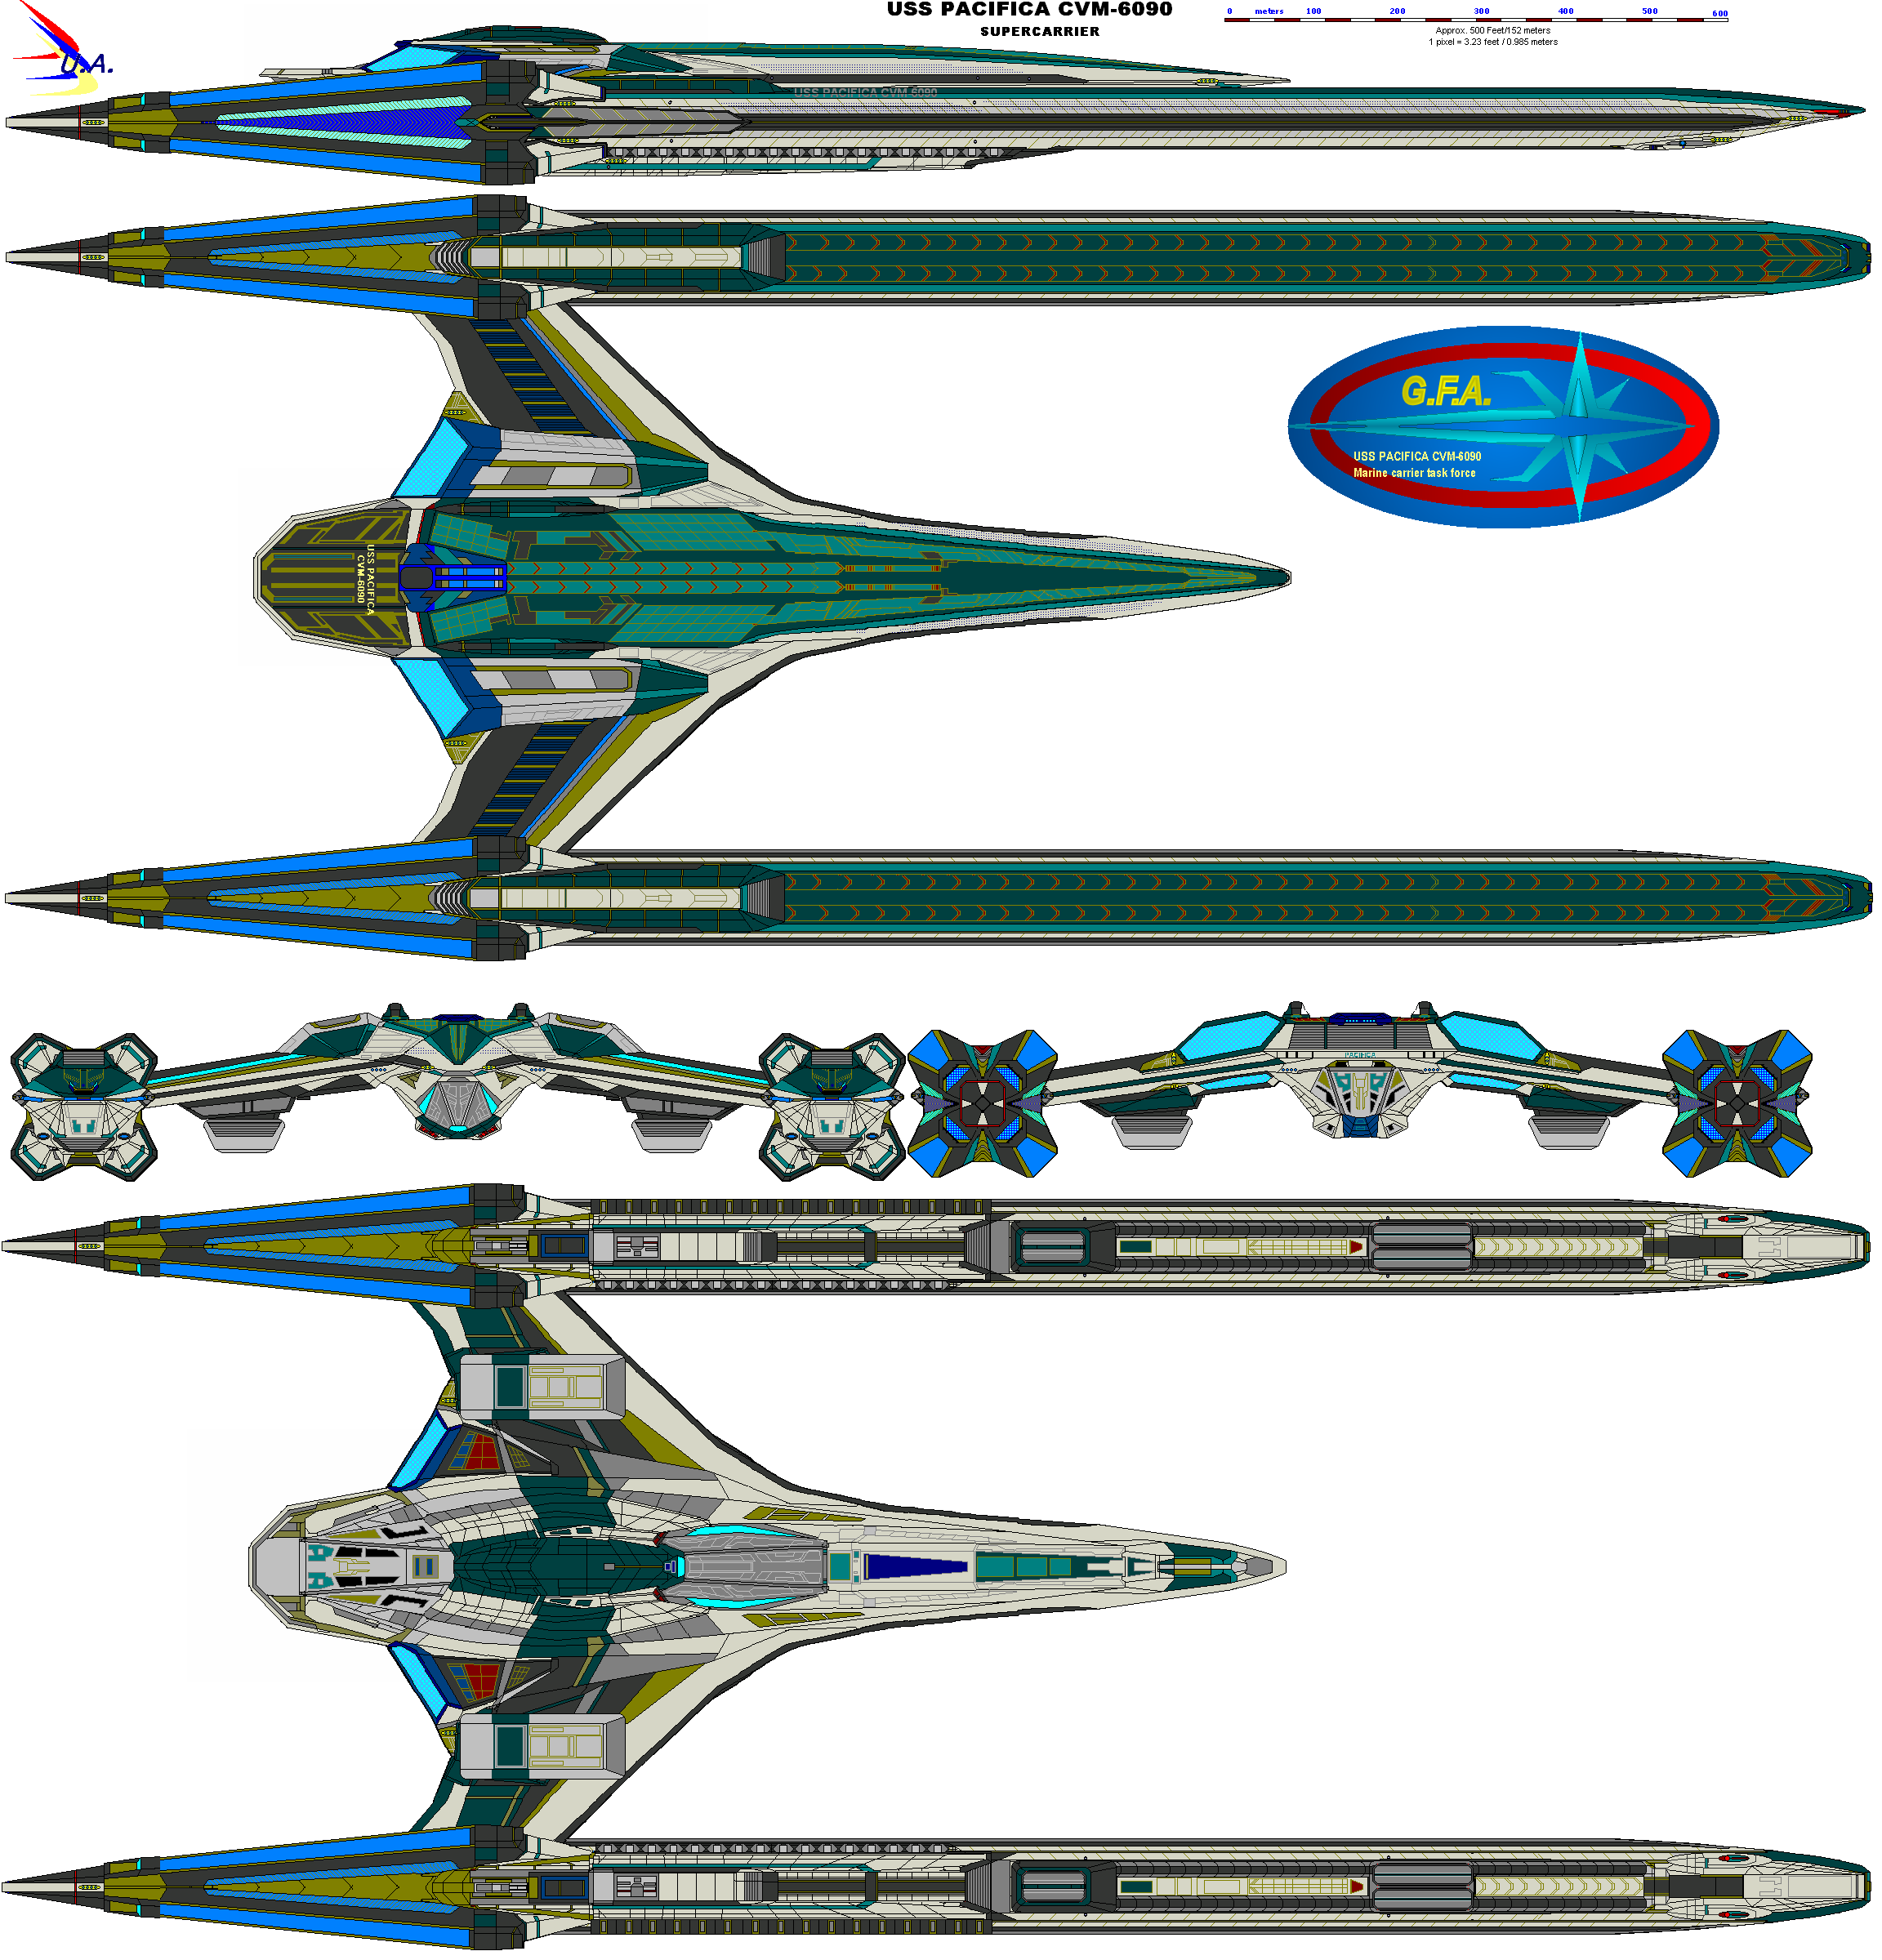 U.S.S. Pacifica CVX-6090 by bagera3005